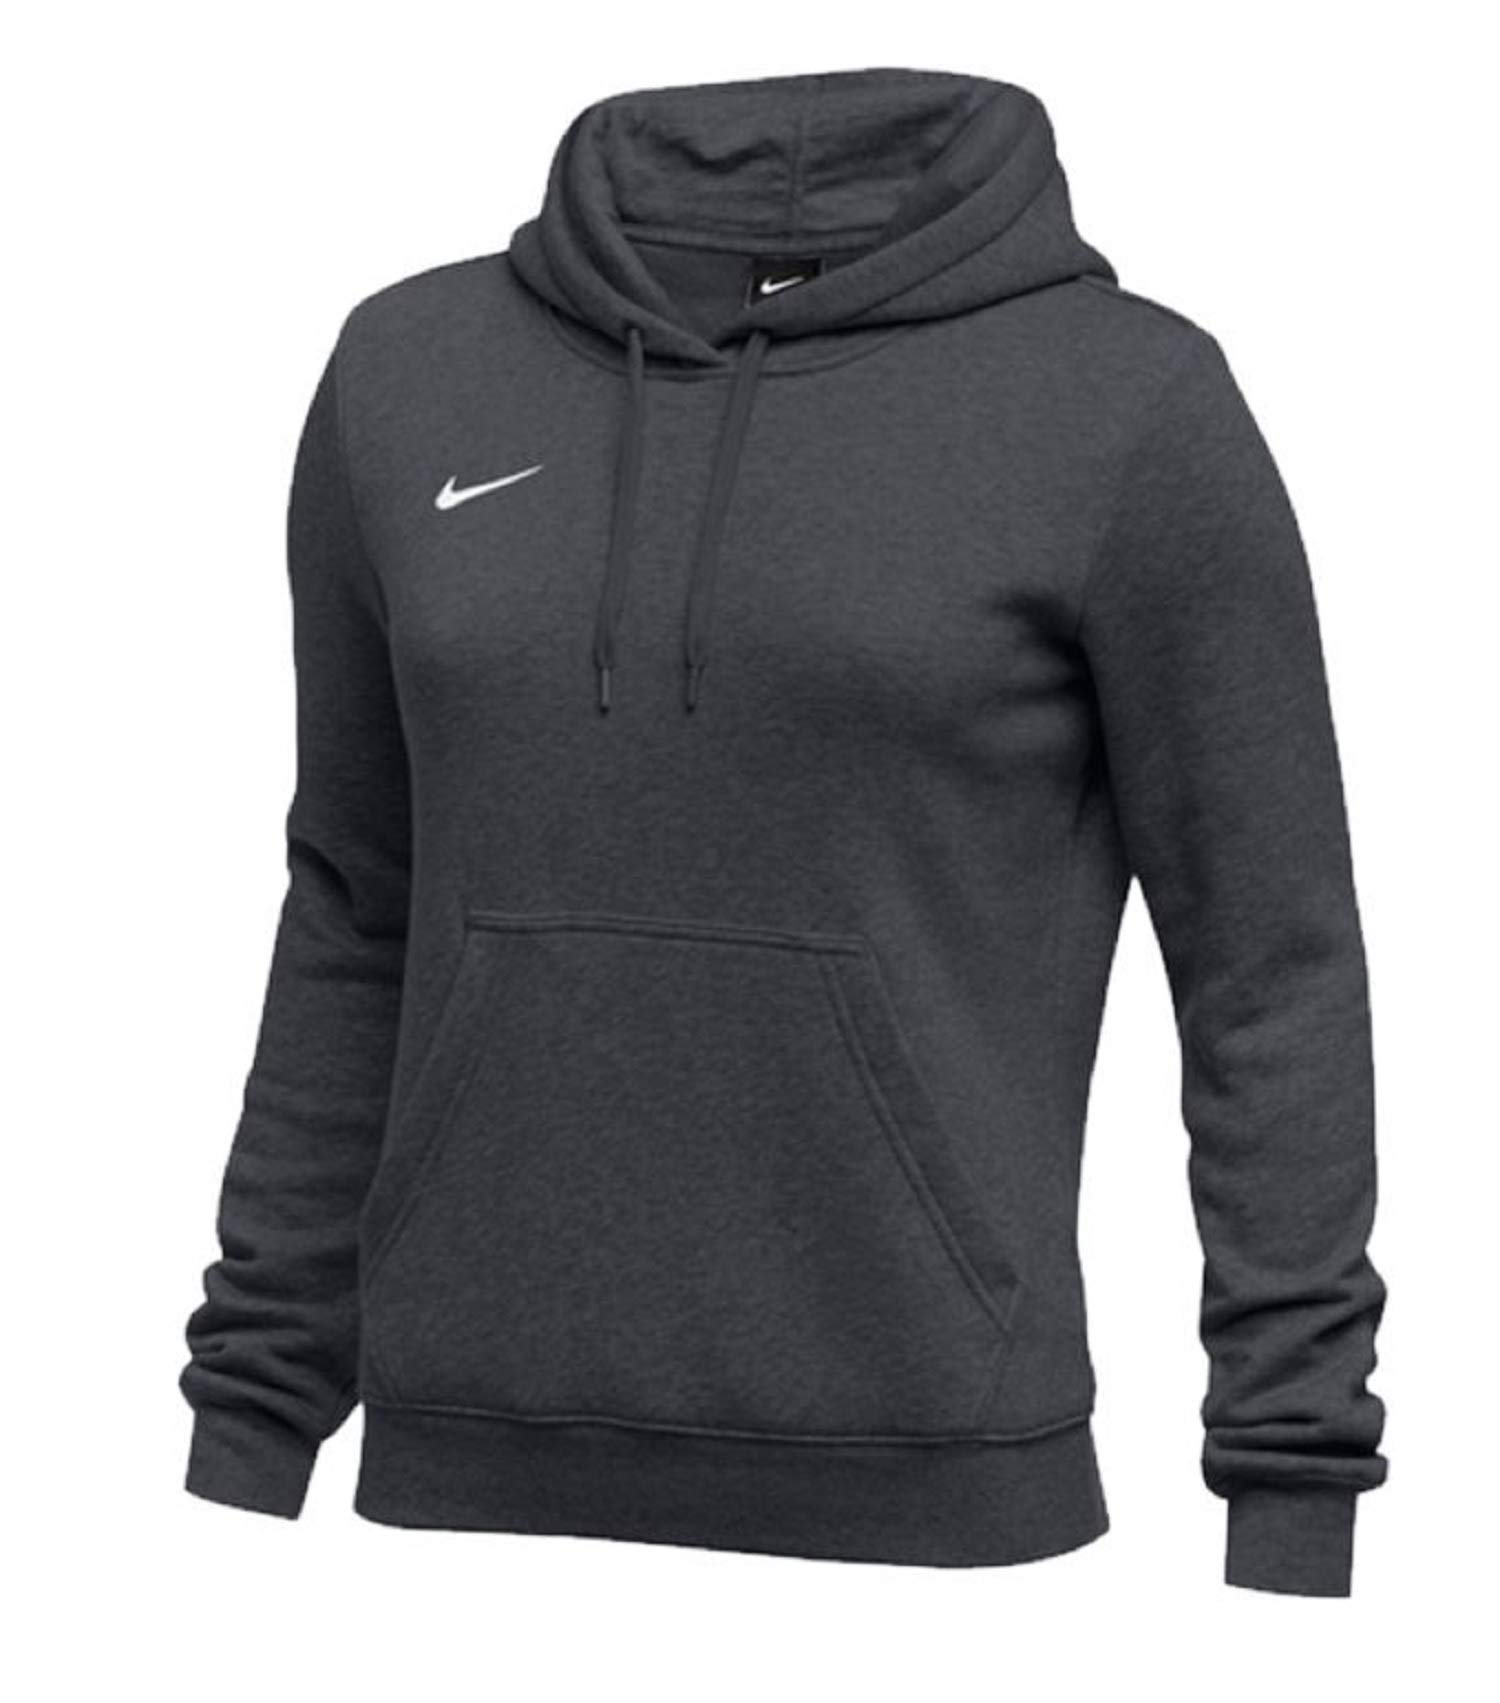 Nike Womens Pullover Club Fleece Hoodie (Small, Anthracite) by Nike